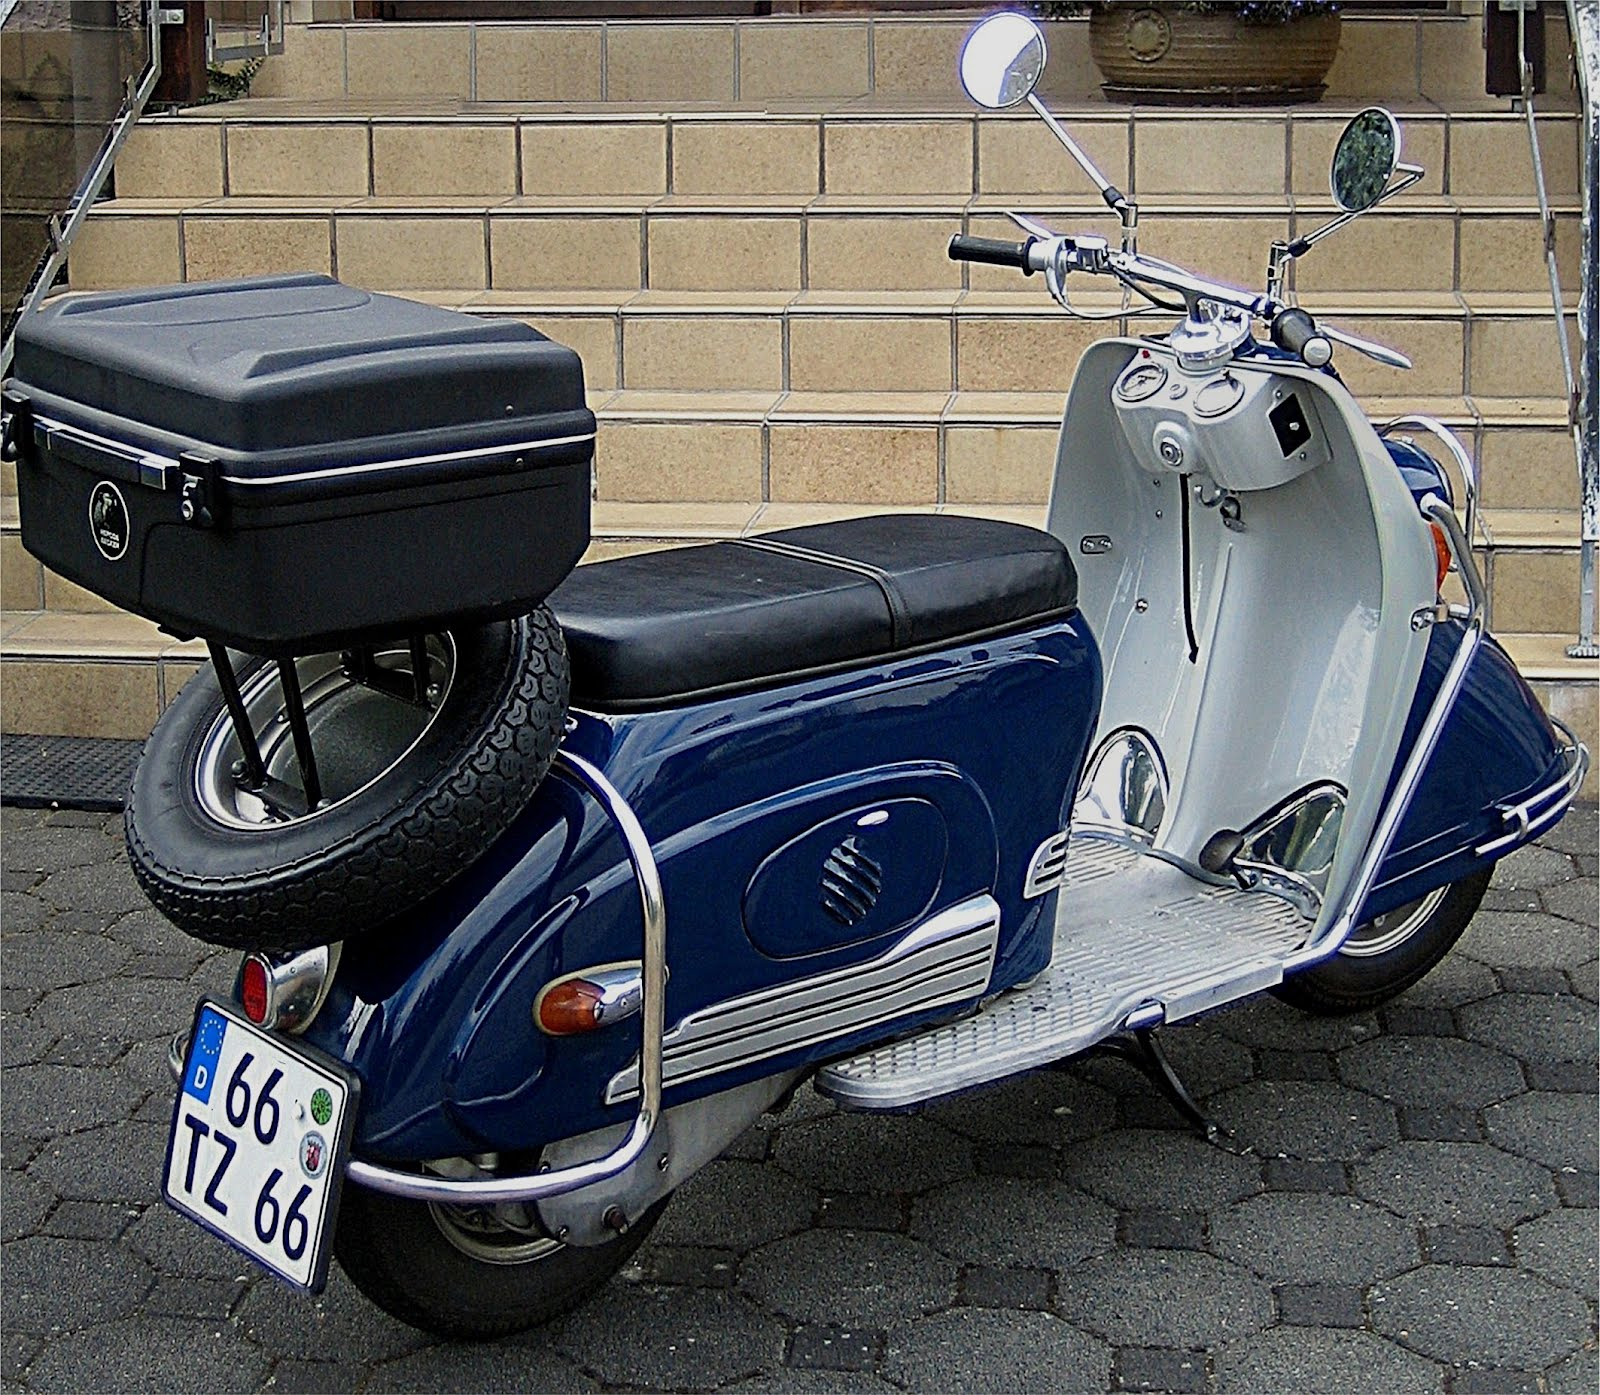 heinkel tourist vespa scooters. Black Bedroom Furniture Sets. Home Design Ideas